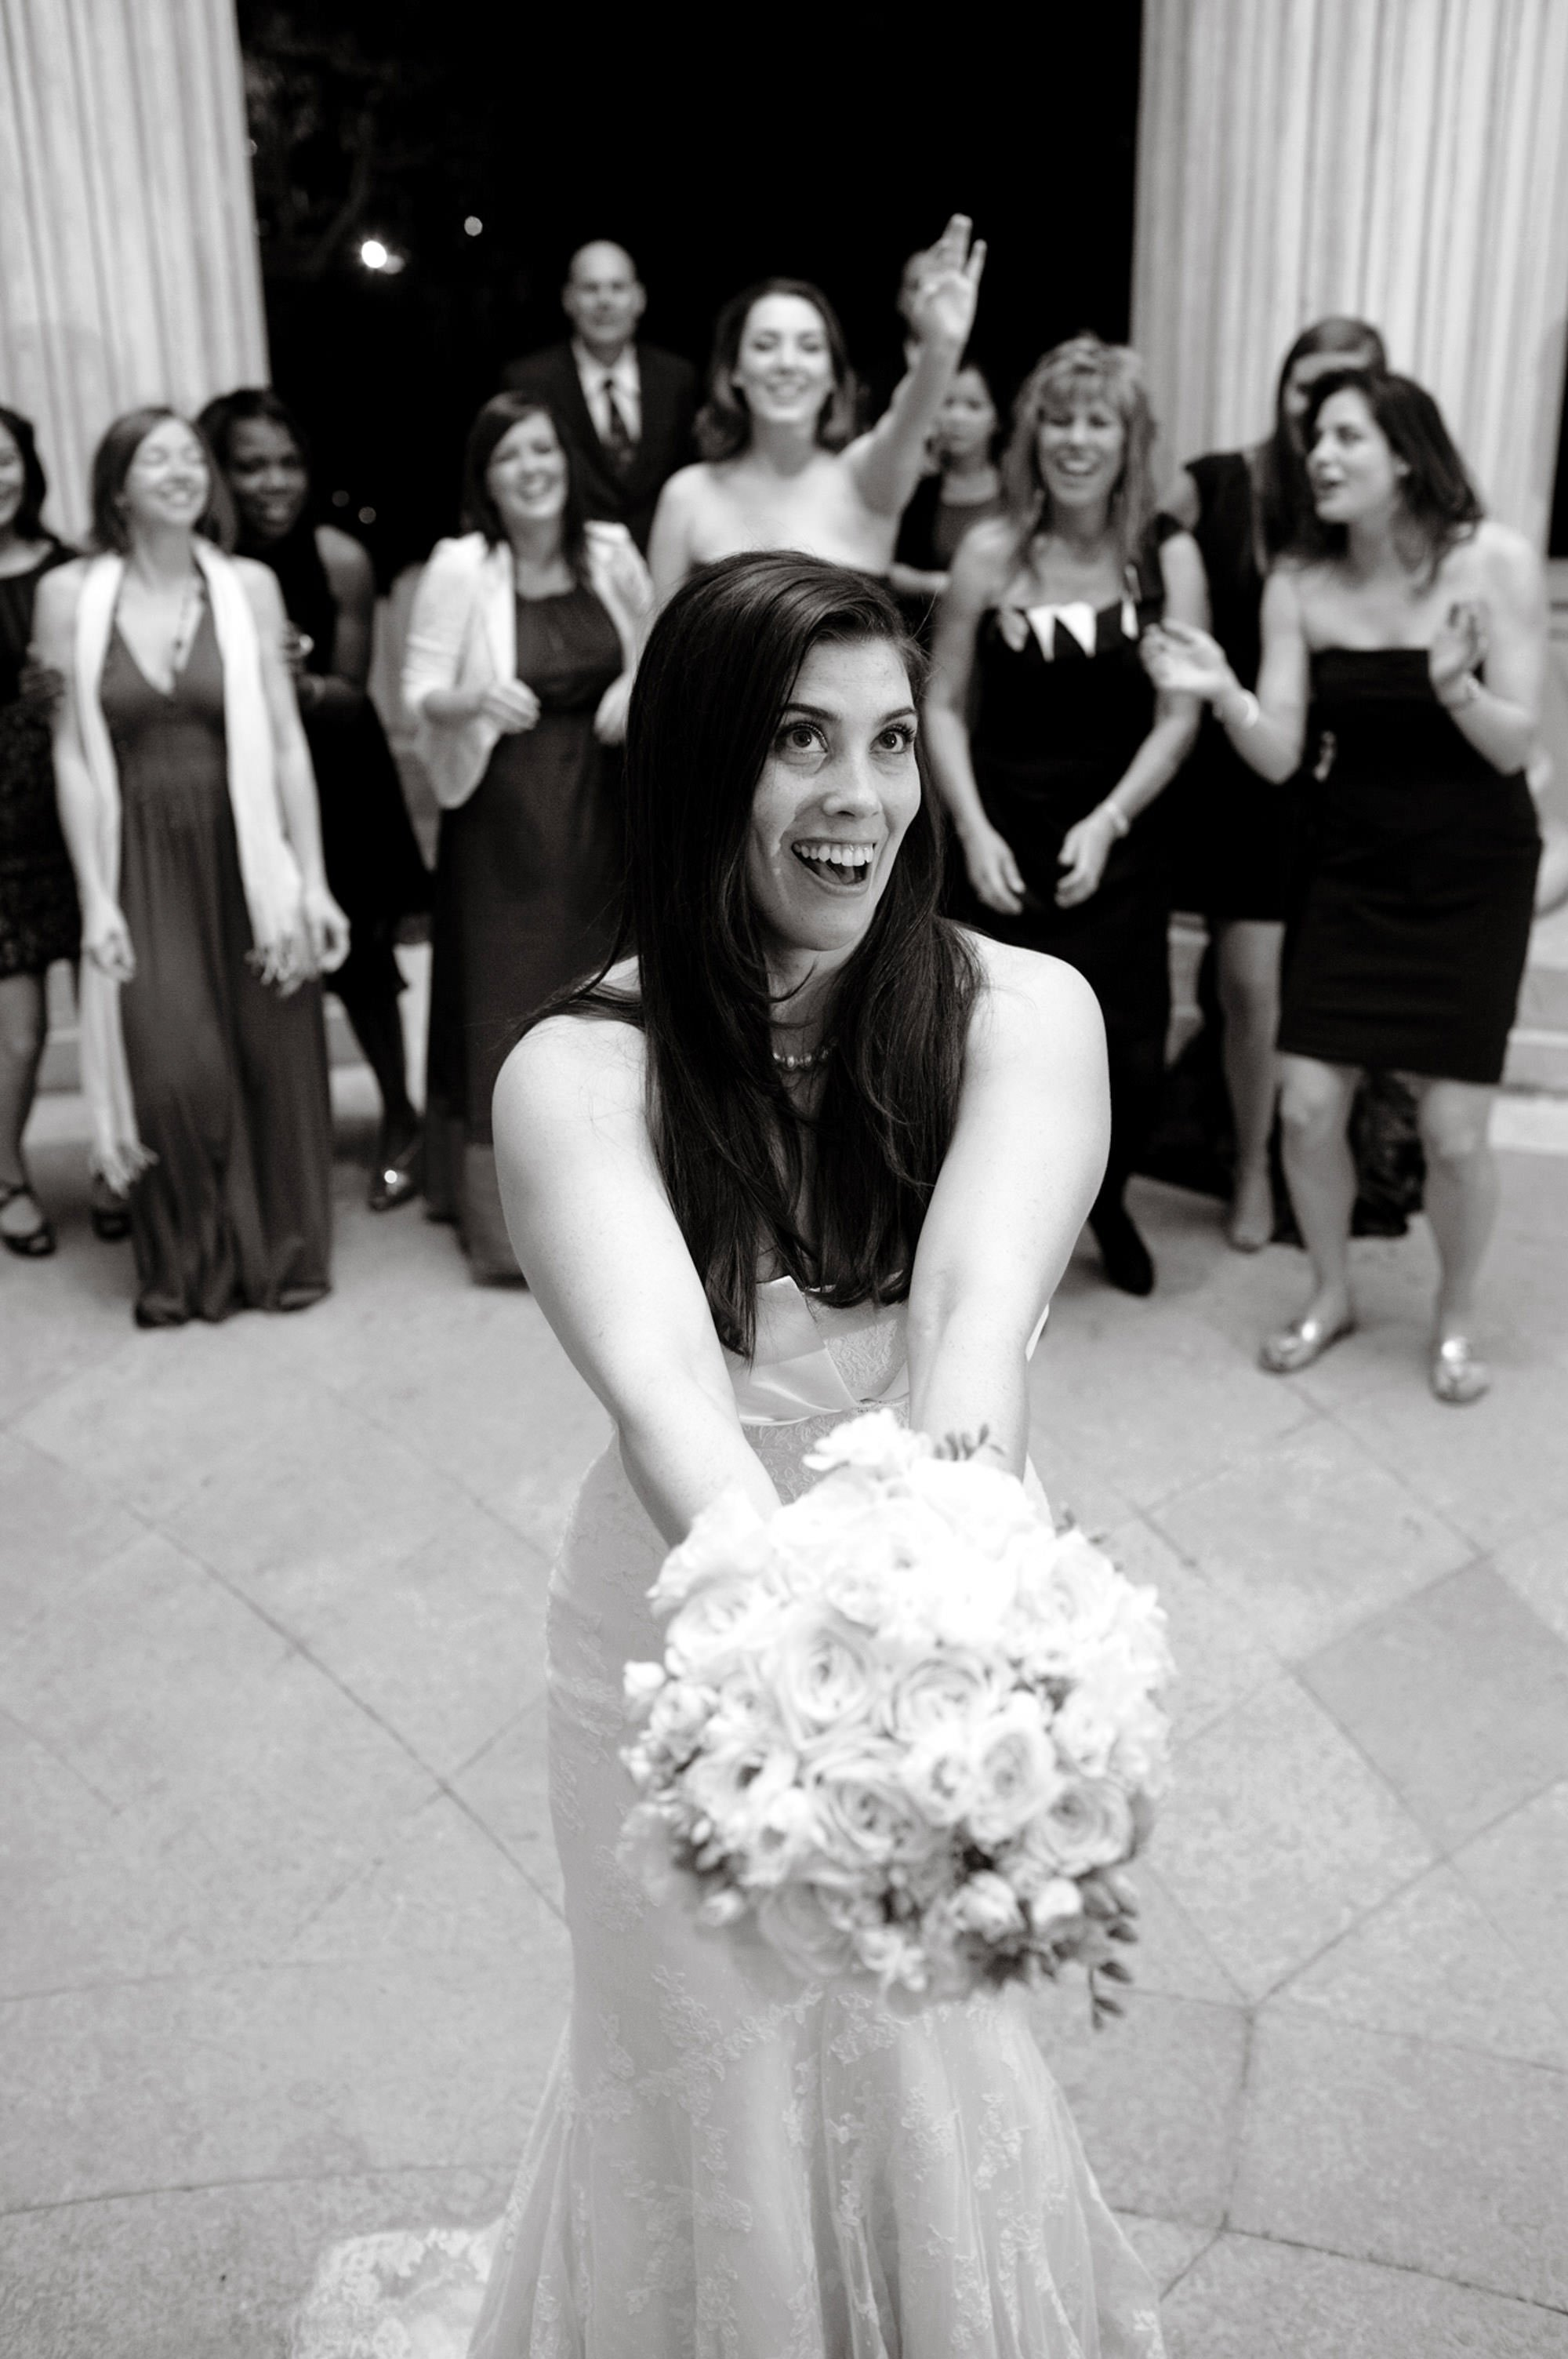 The bride prepares to toss her bouquet during the DAR Memorial Continental Hall Wedding reception.